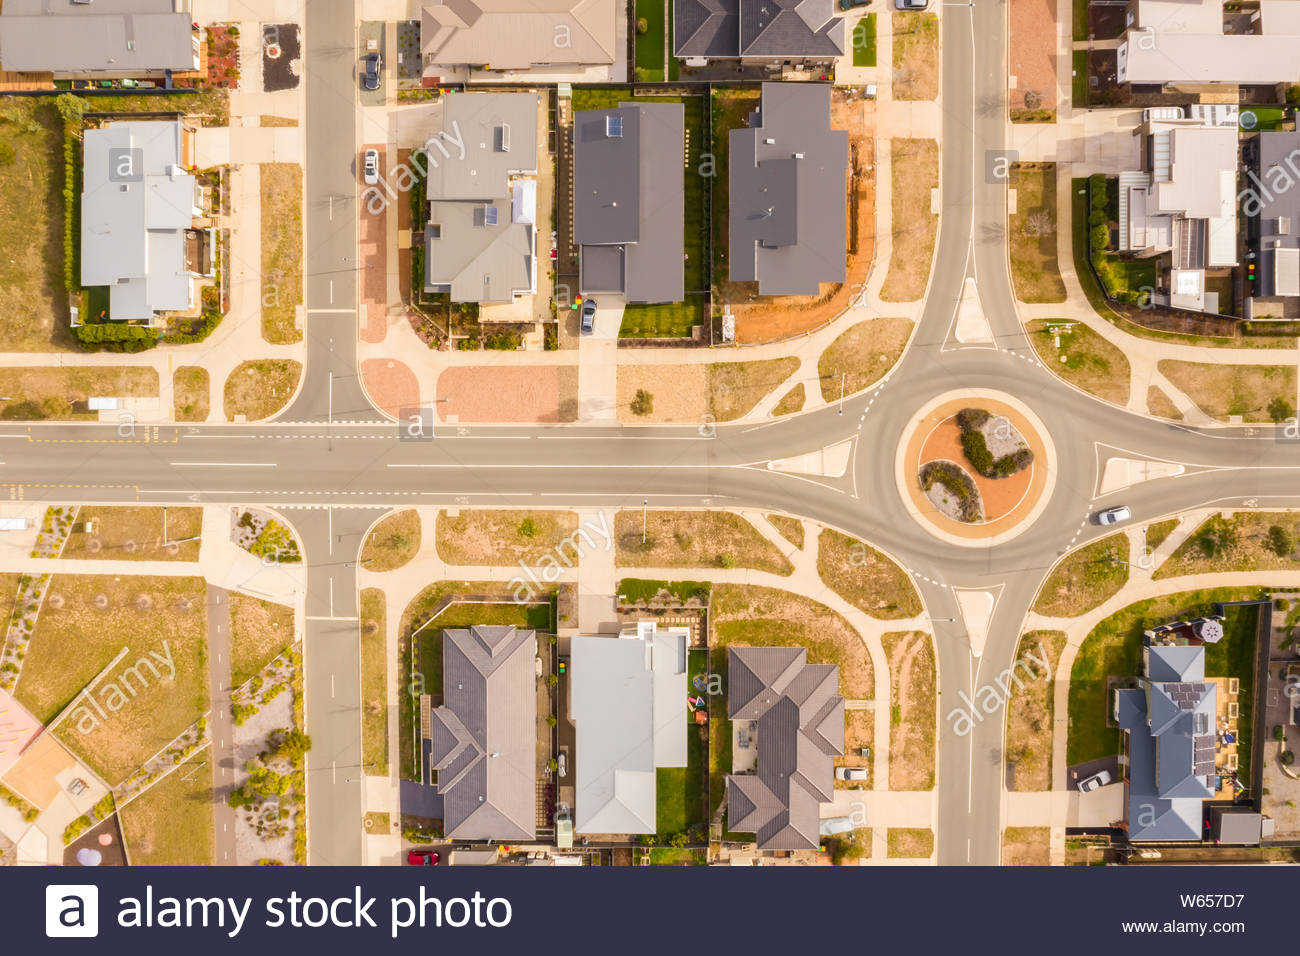 Aerial View Of Streets Rooftops And A Roundabout Embellished With